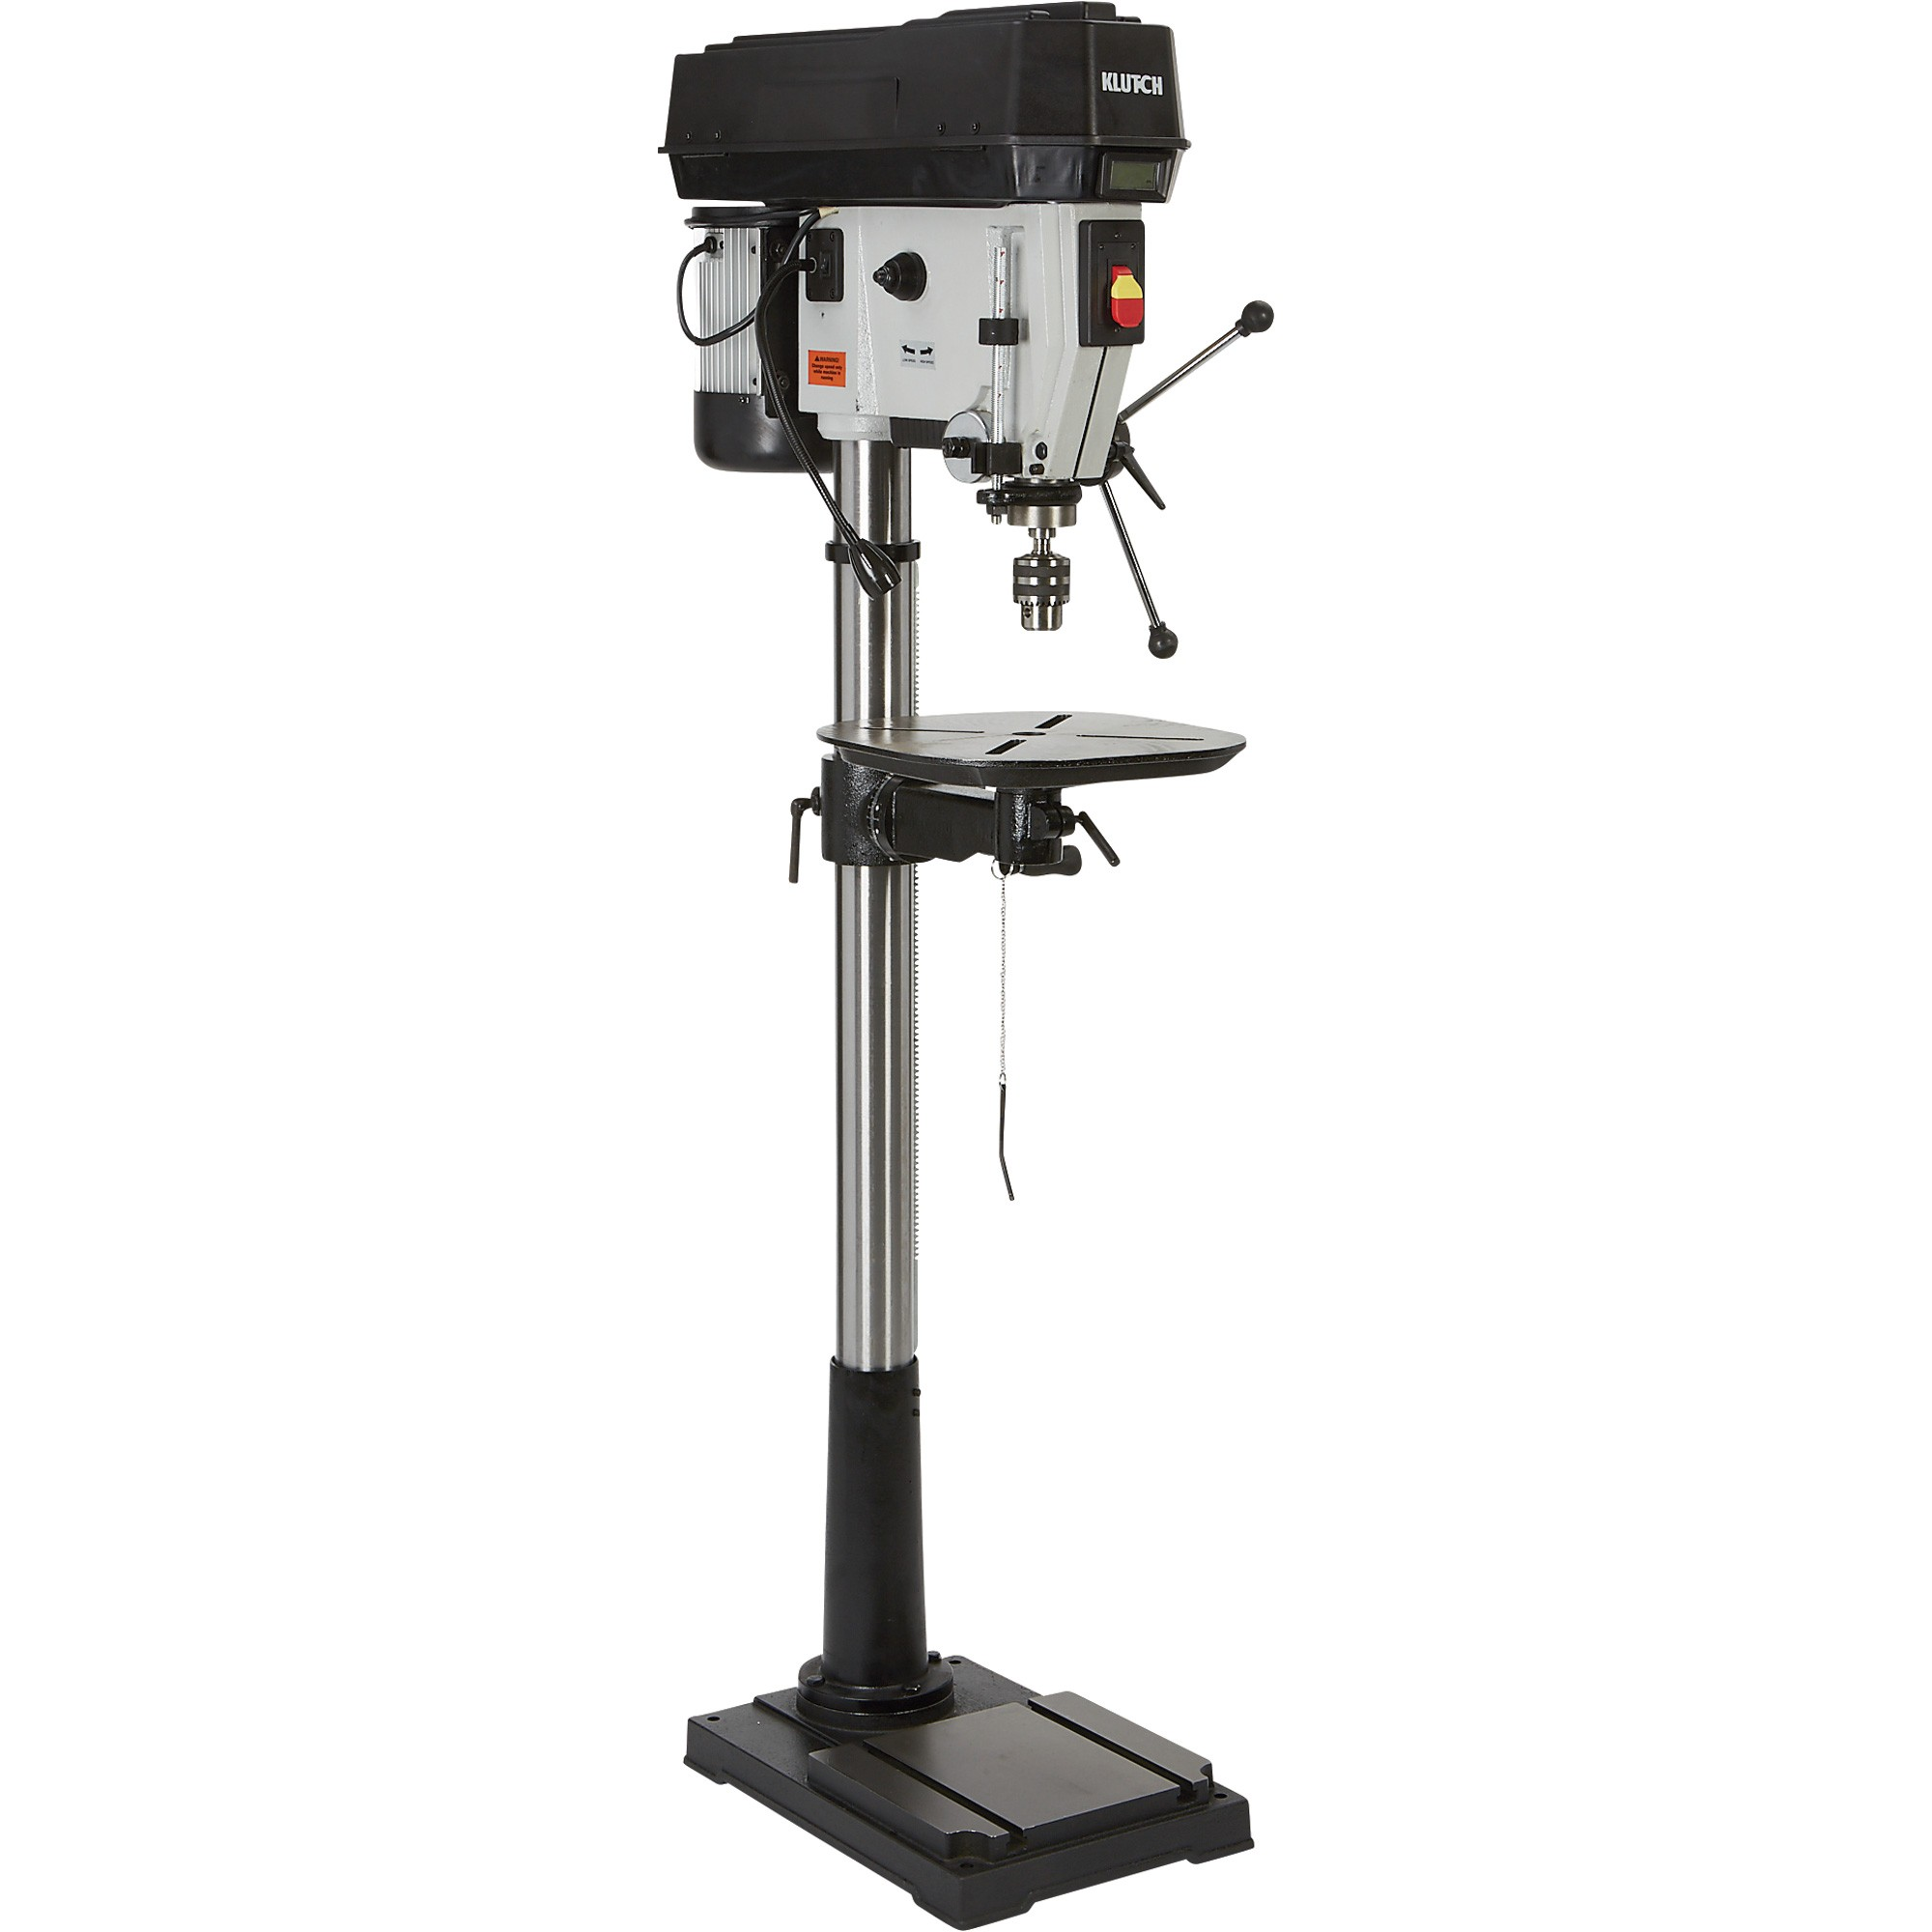 Klutch 14in. Floor drill press